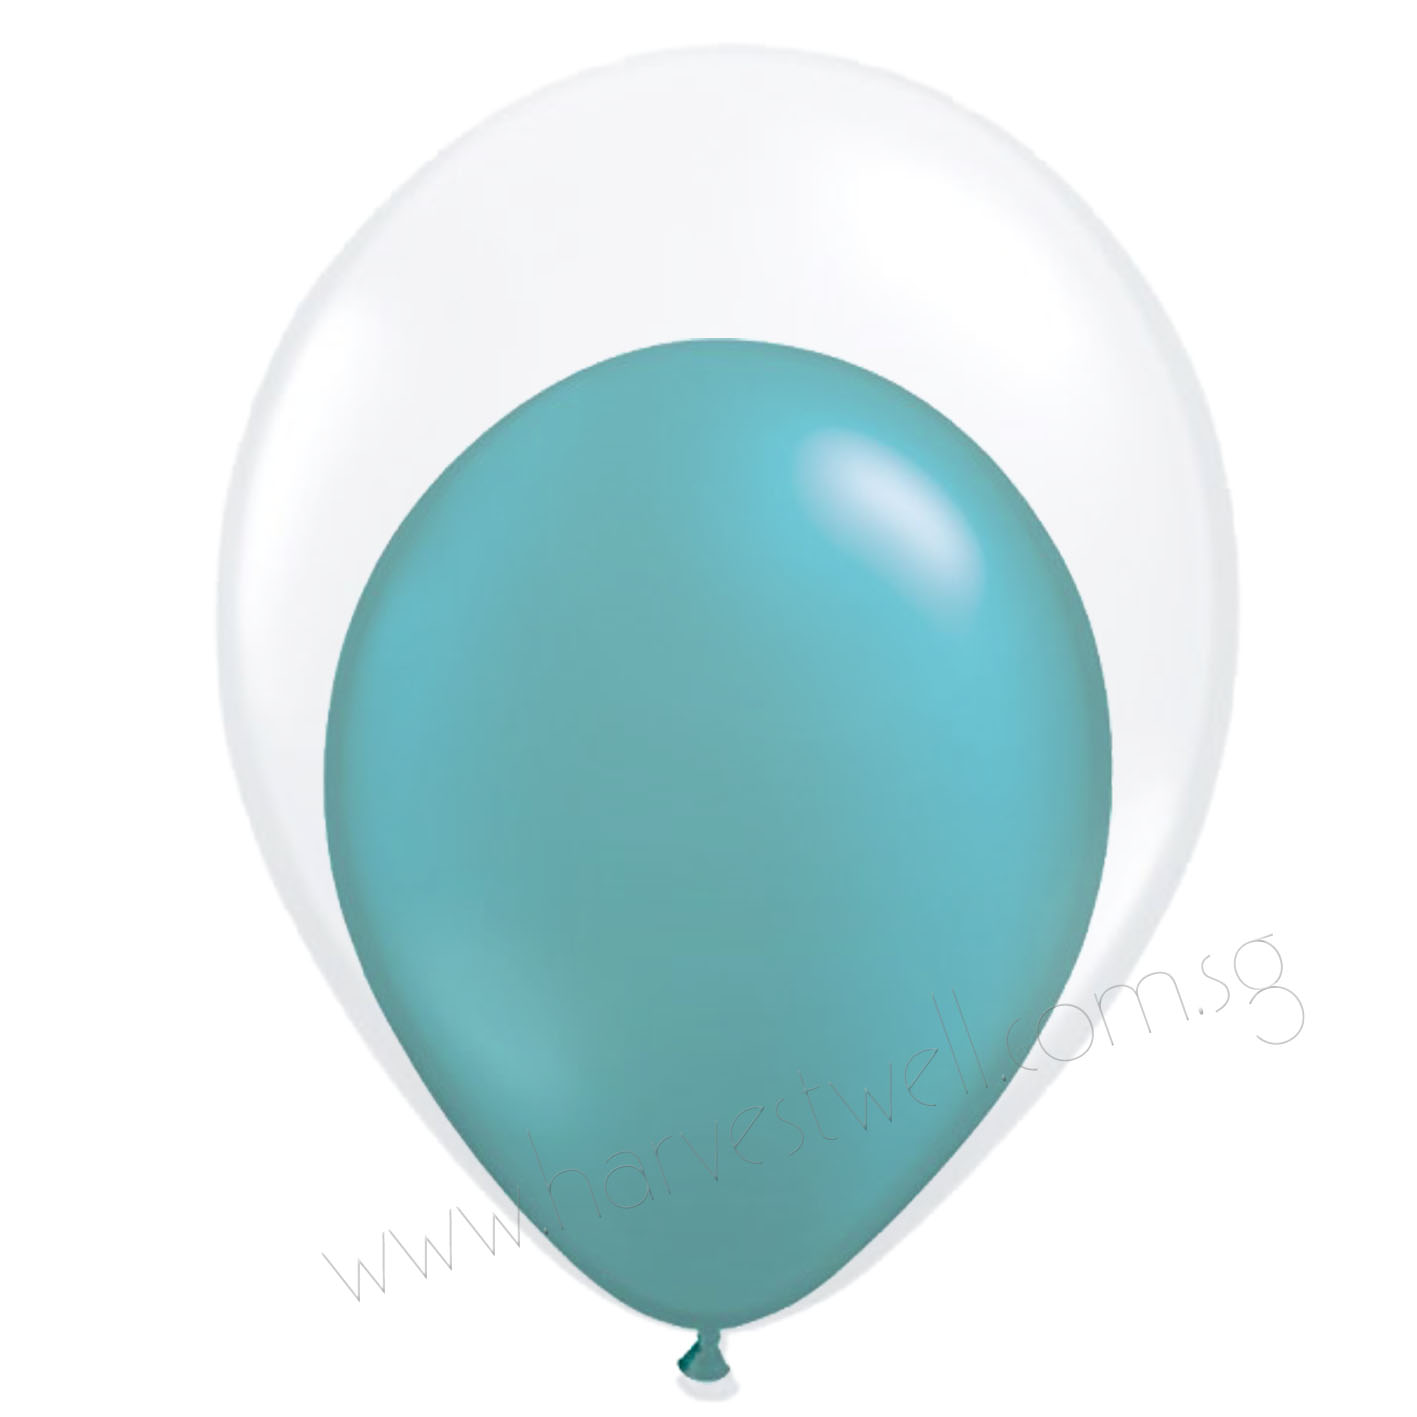 Teal Balloon In Balloon